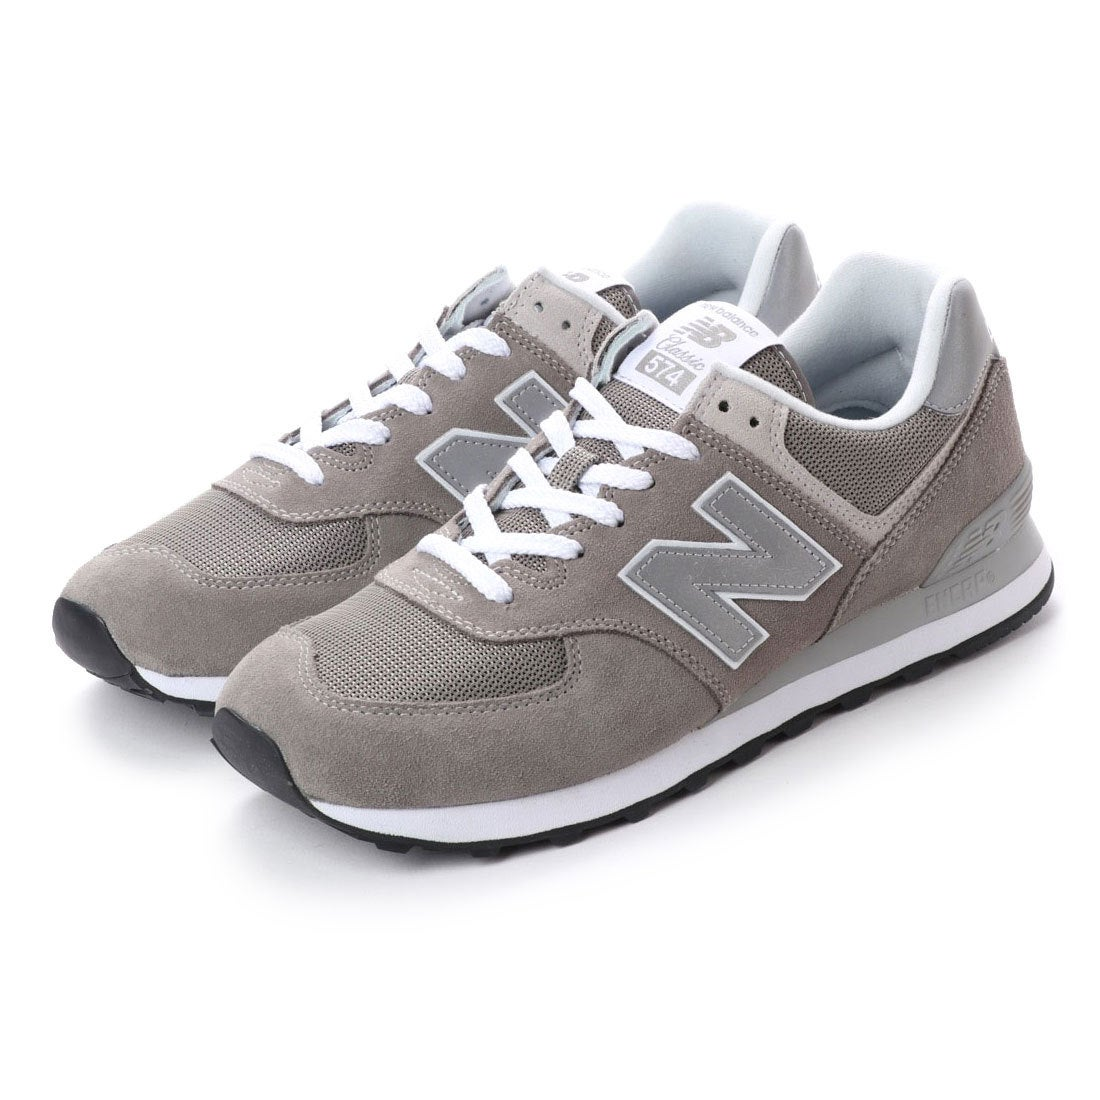 the best unique design well known new balance ニューバランス NEW BALANCE メンズ スニーカー ...